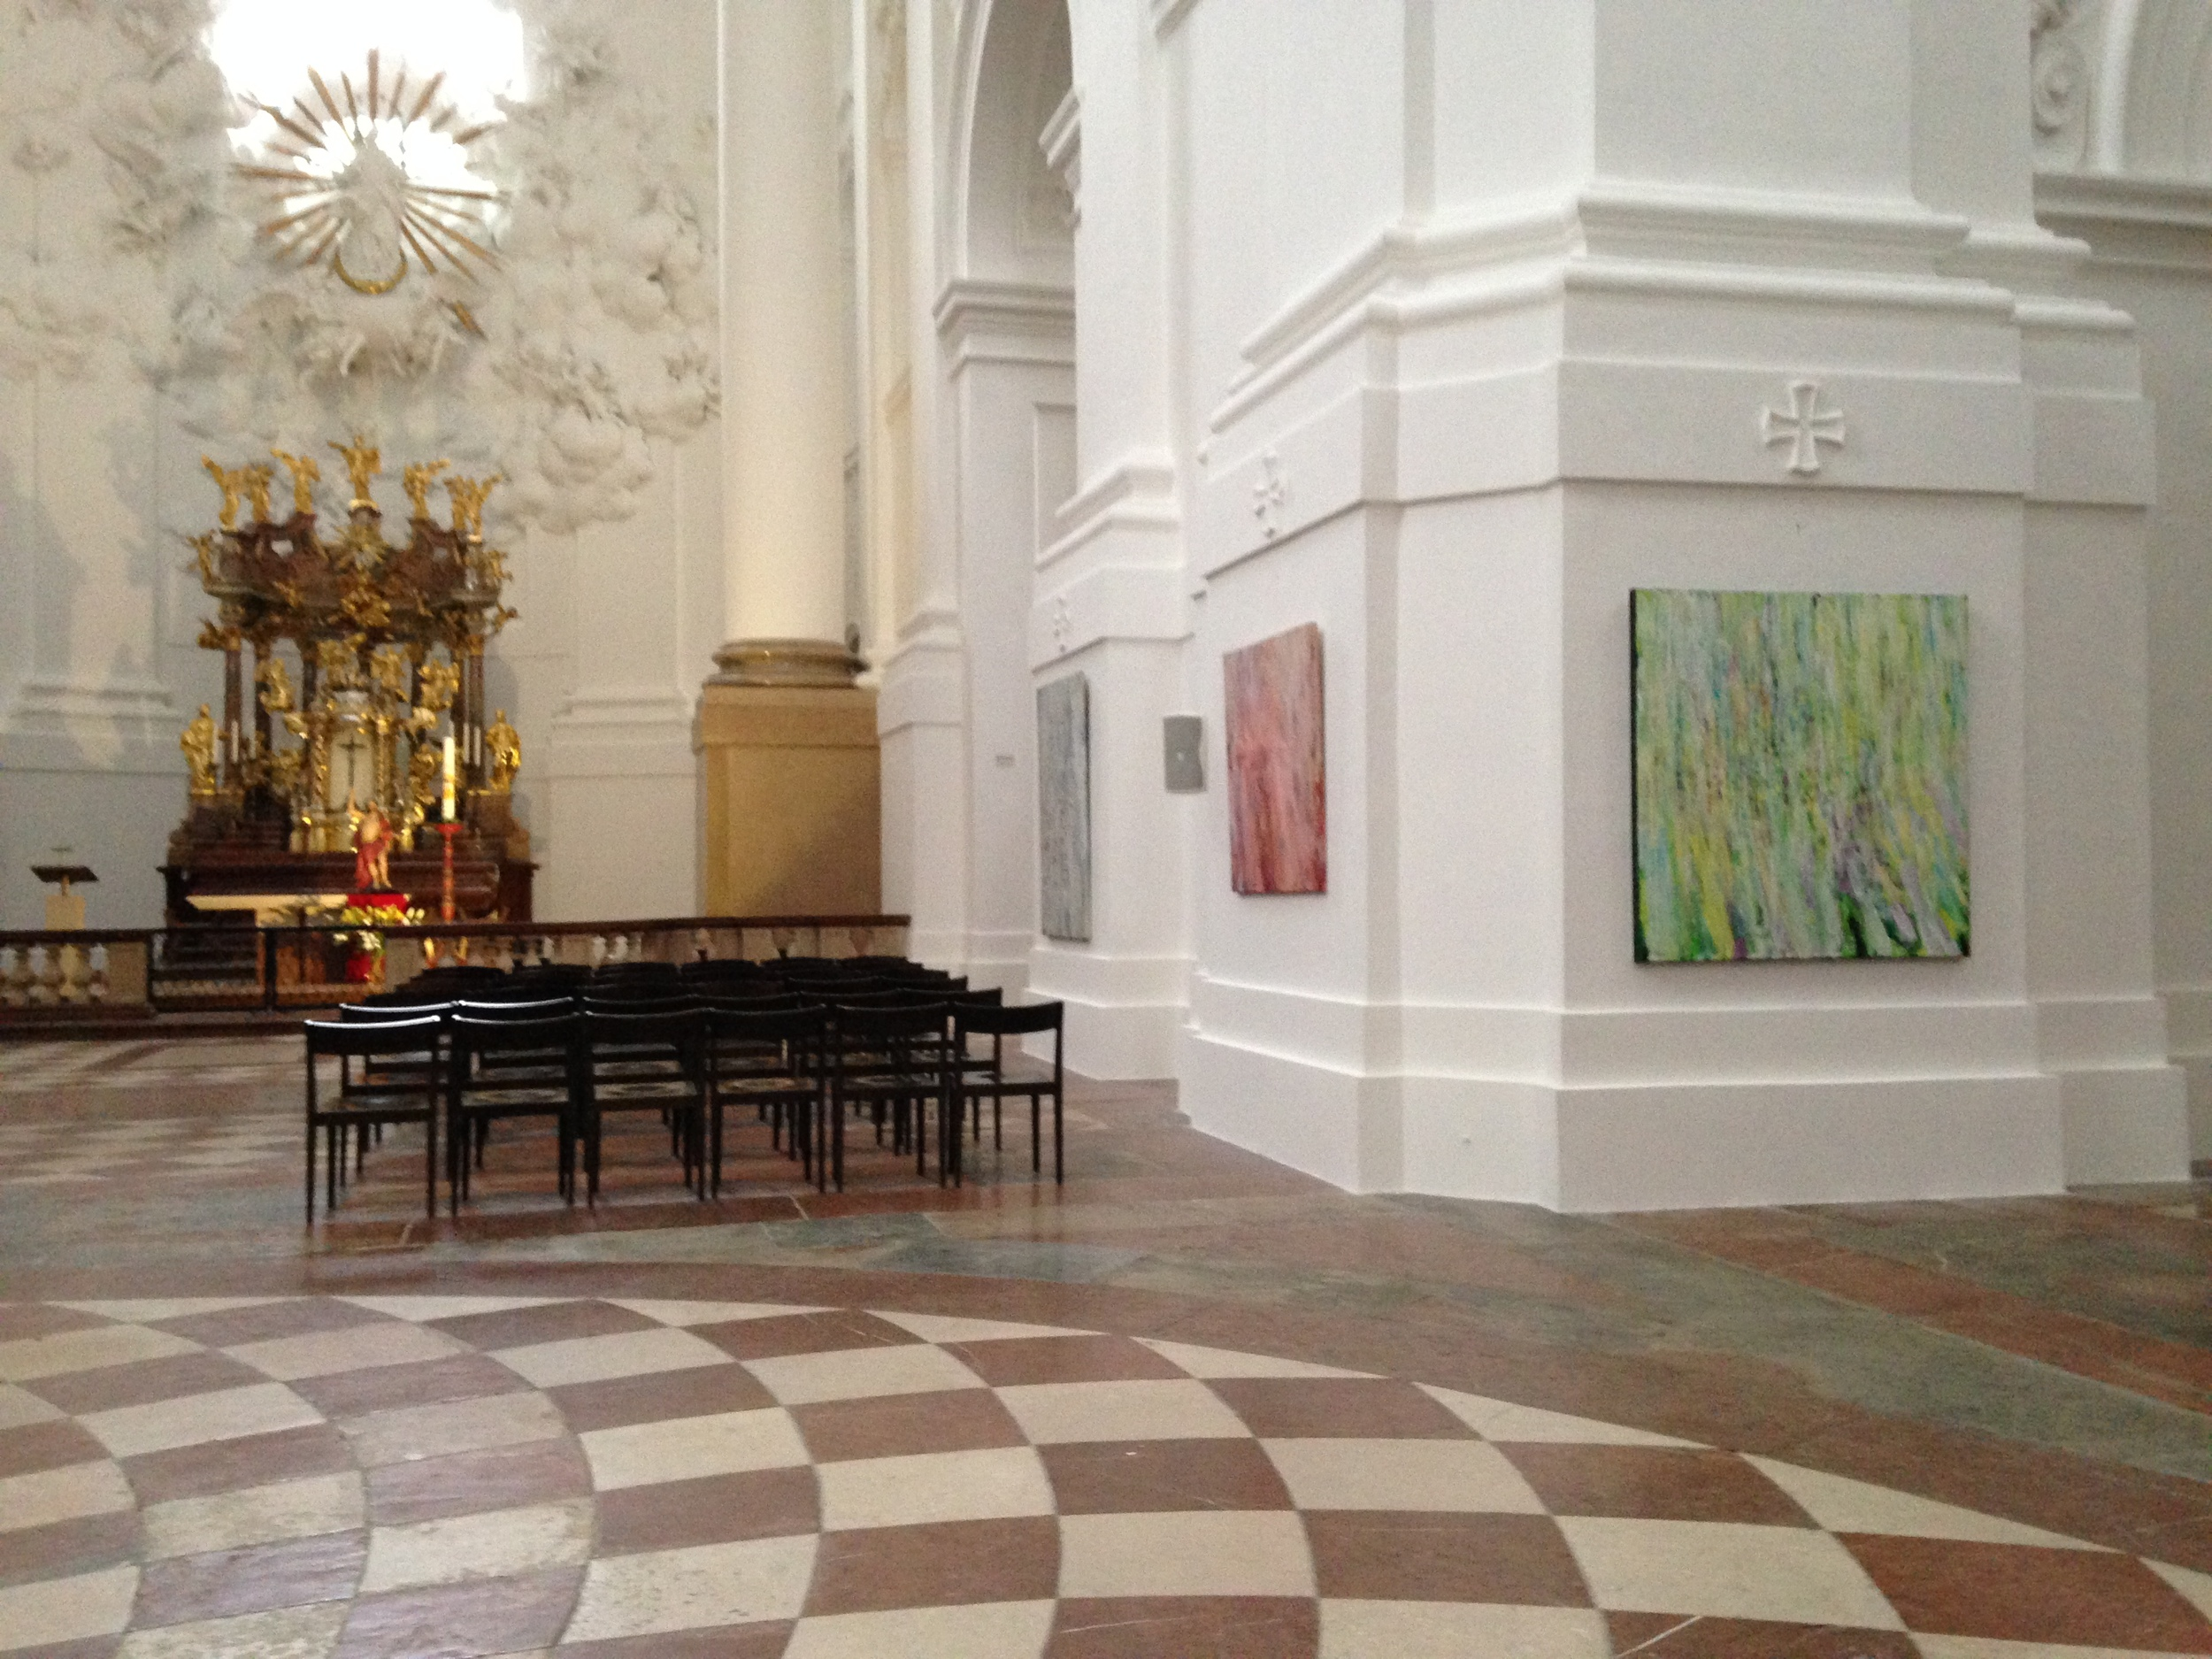 Entering the church, Susan's paintings line the path to the glowing center altar.